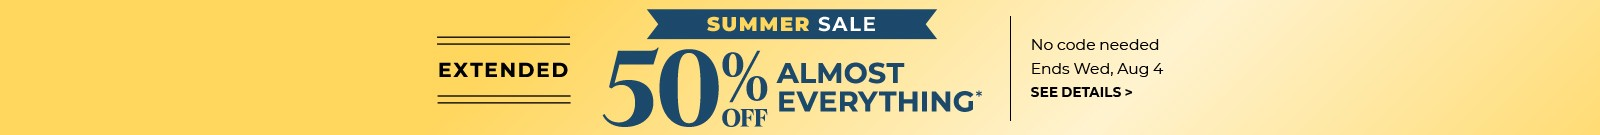 Extended Summer Sale, 50% off almost everything, no code needed, Ends Wed, Aug 4